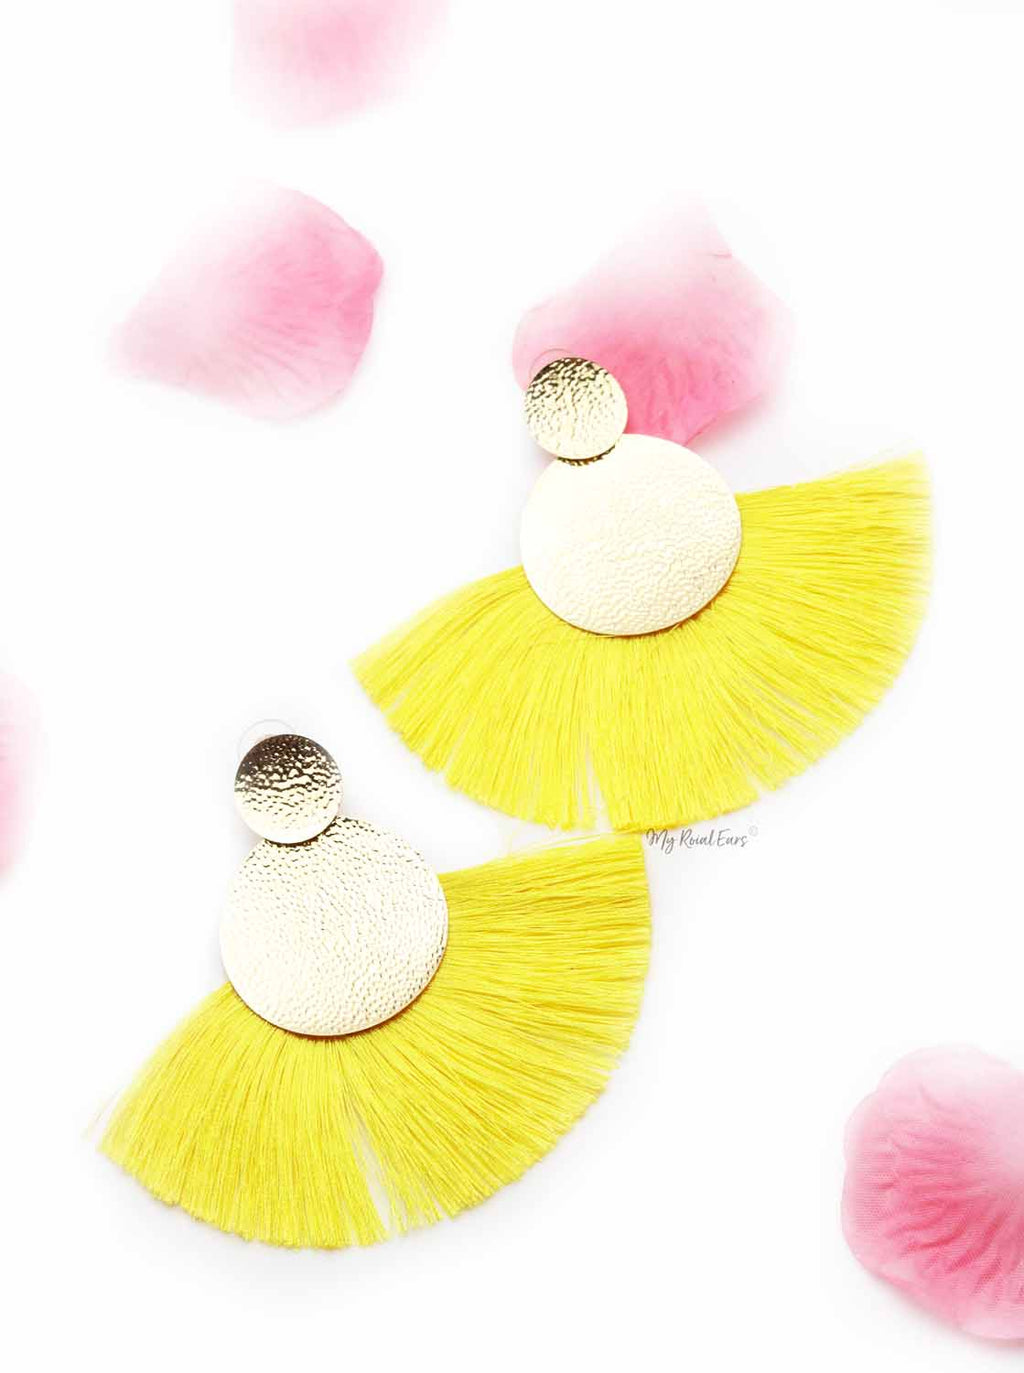 Annual Delphinium- gold and yellow tassel earrings - My Roial Ears LTD